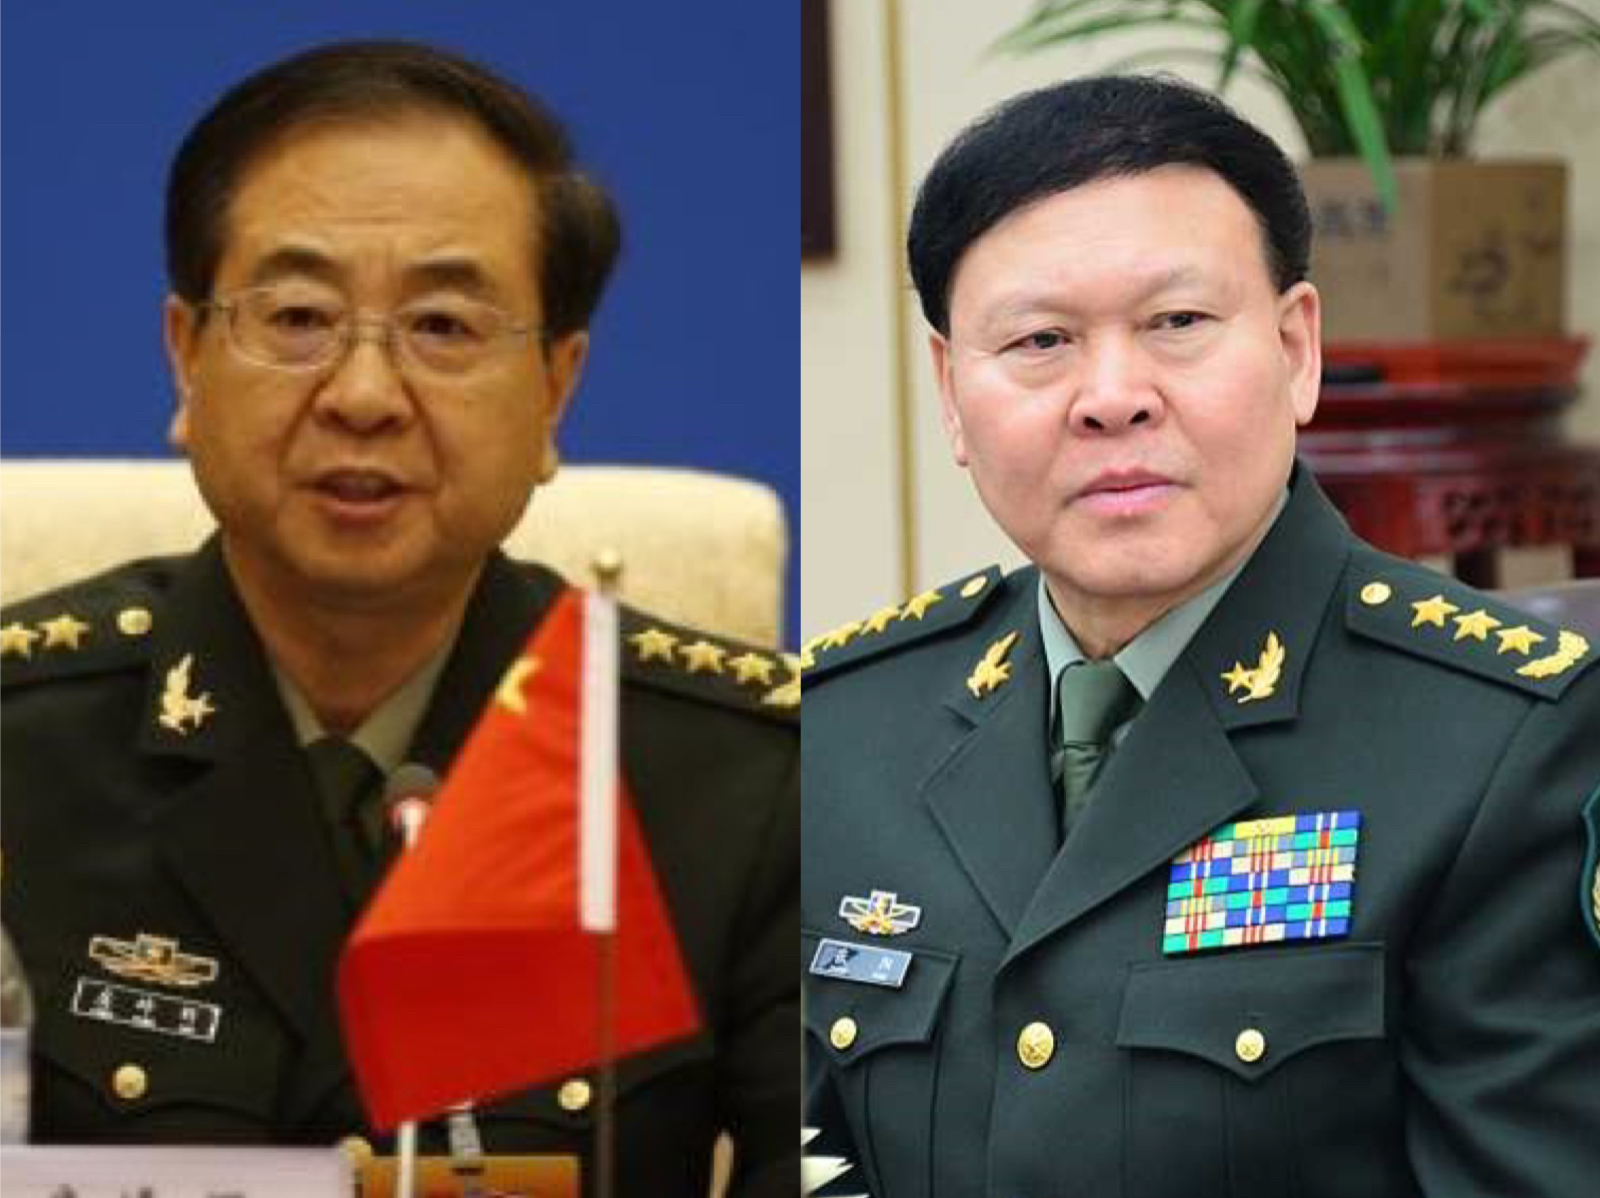 Fang Fenghui and Zhang Yang expelled from the CPC